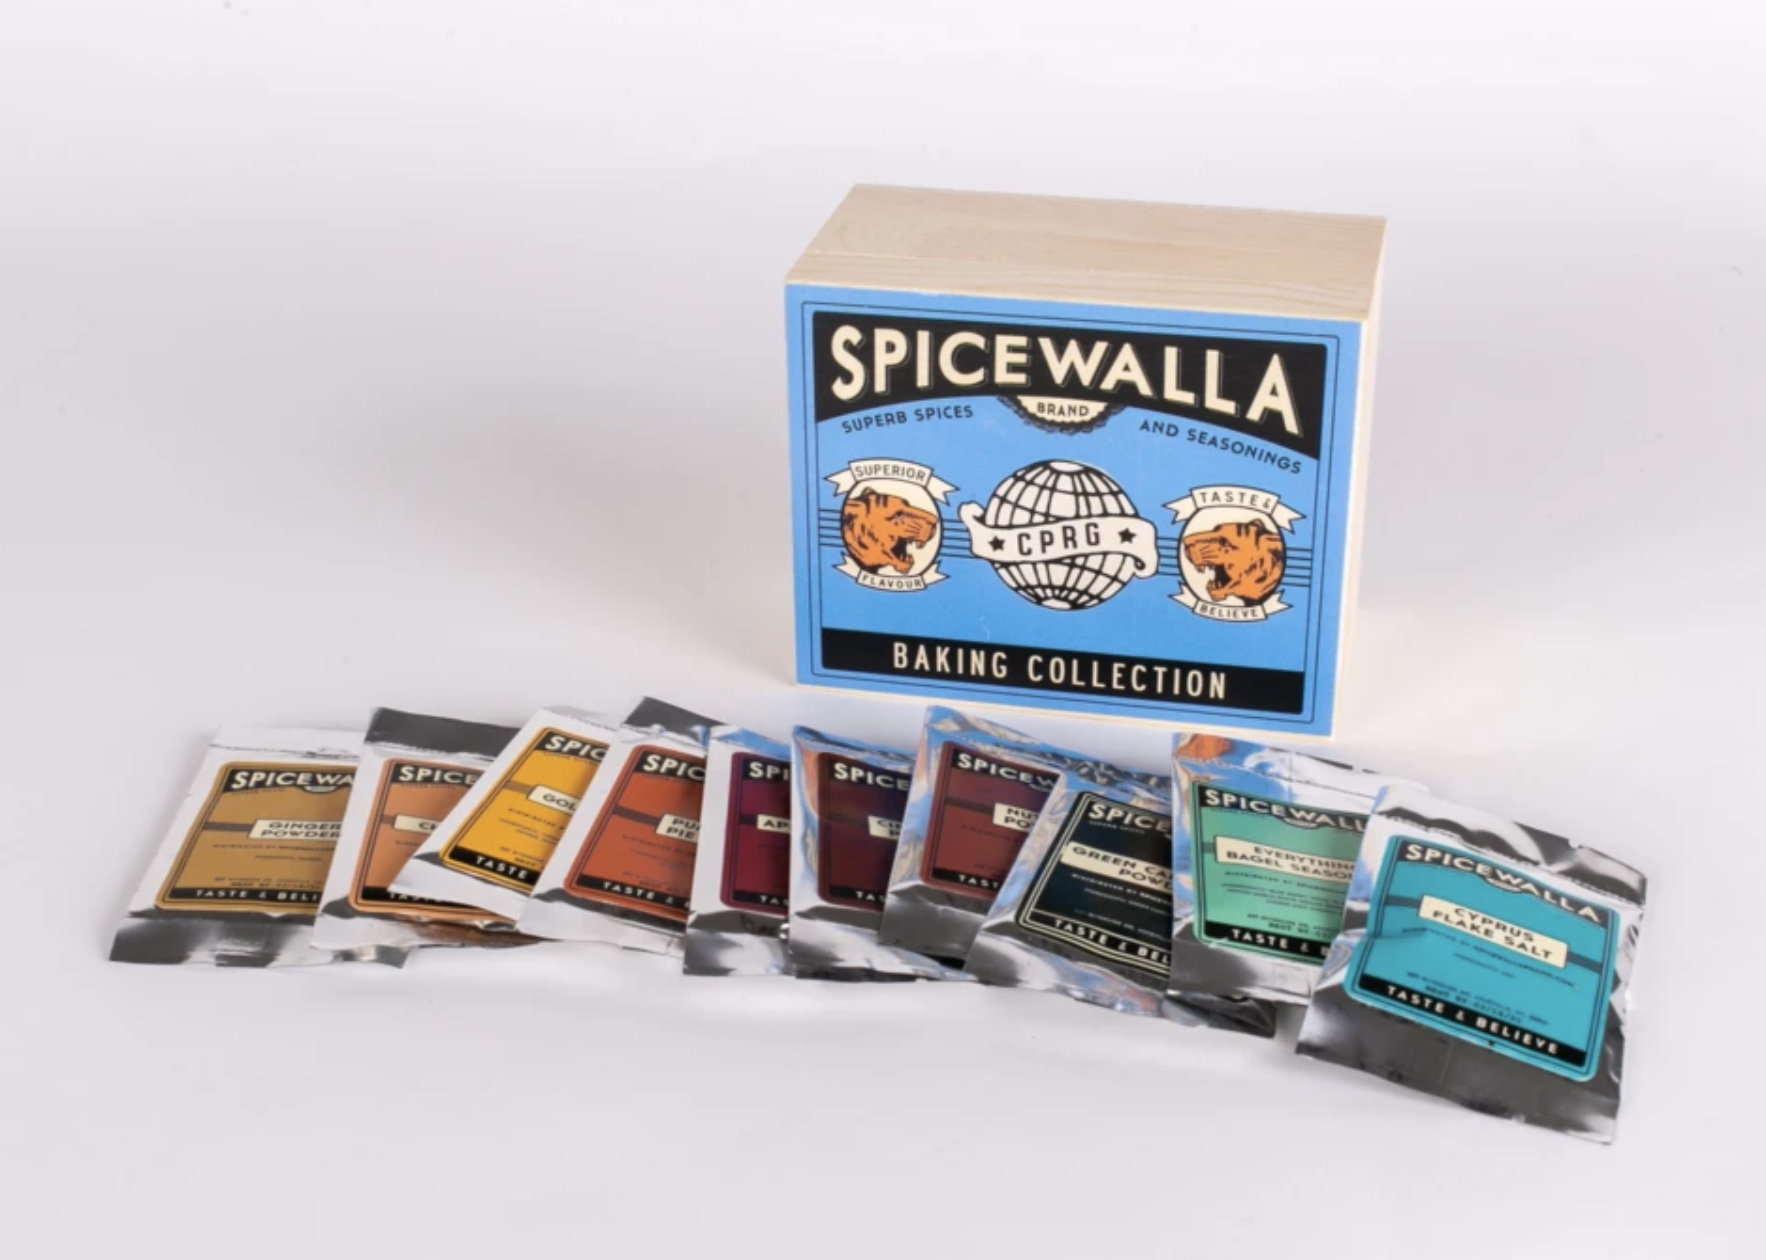 Spicewalla Baking Collection